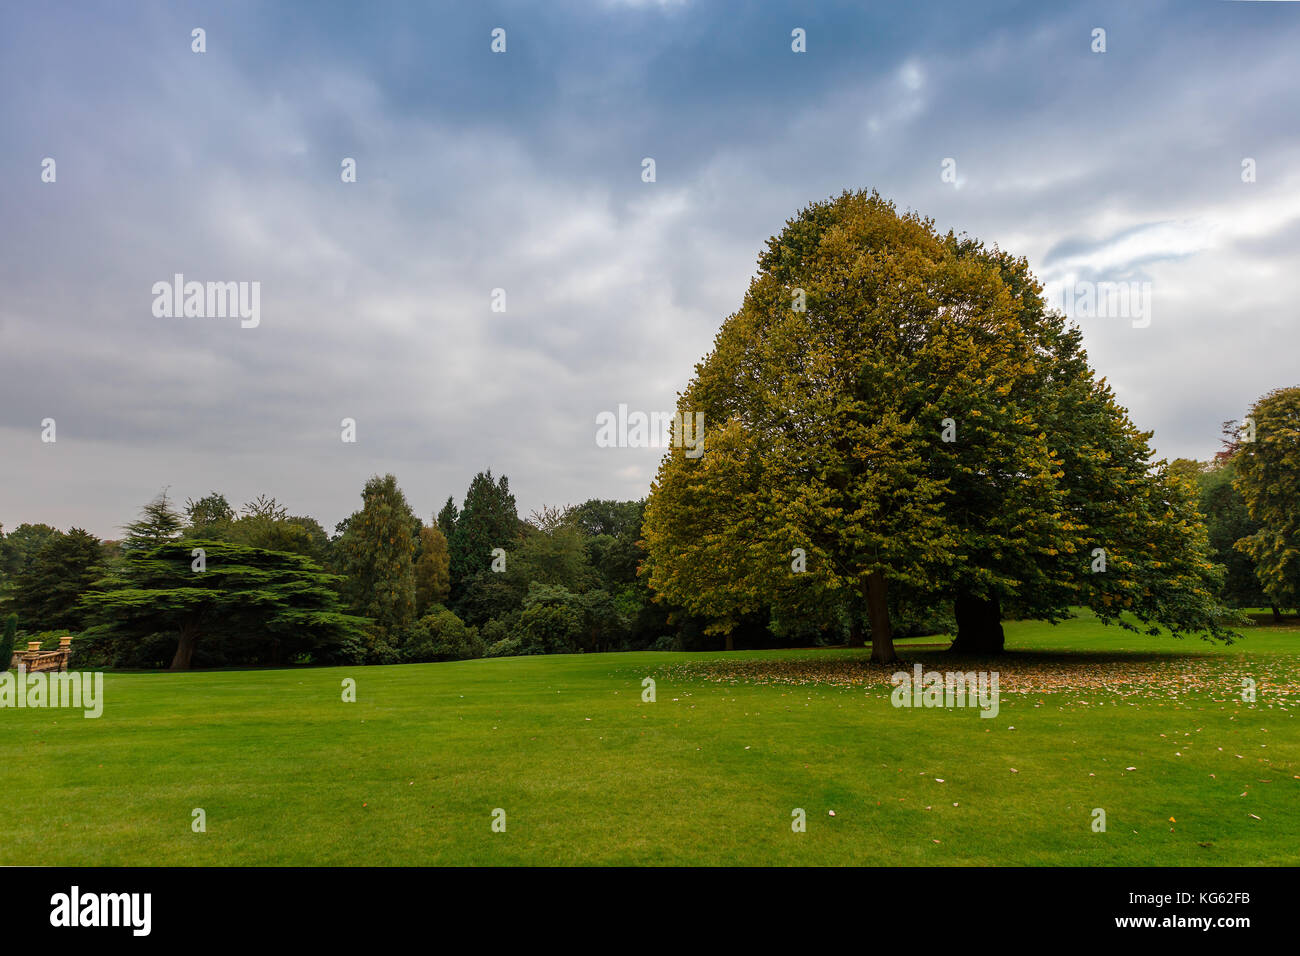 Landscaped park with large trees and lawn in early autumn. - Stock Image